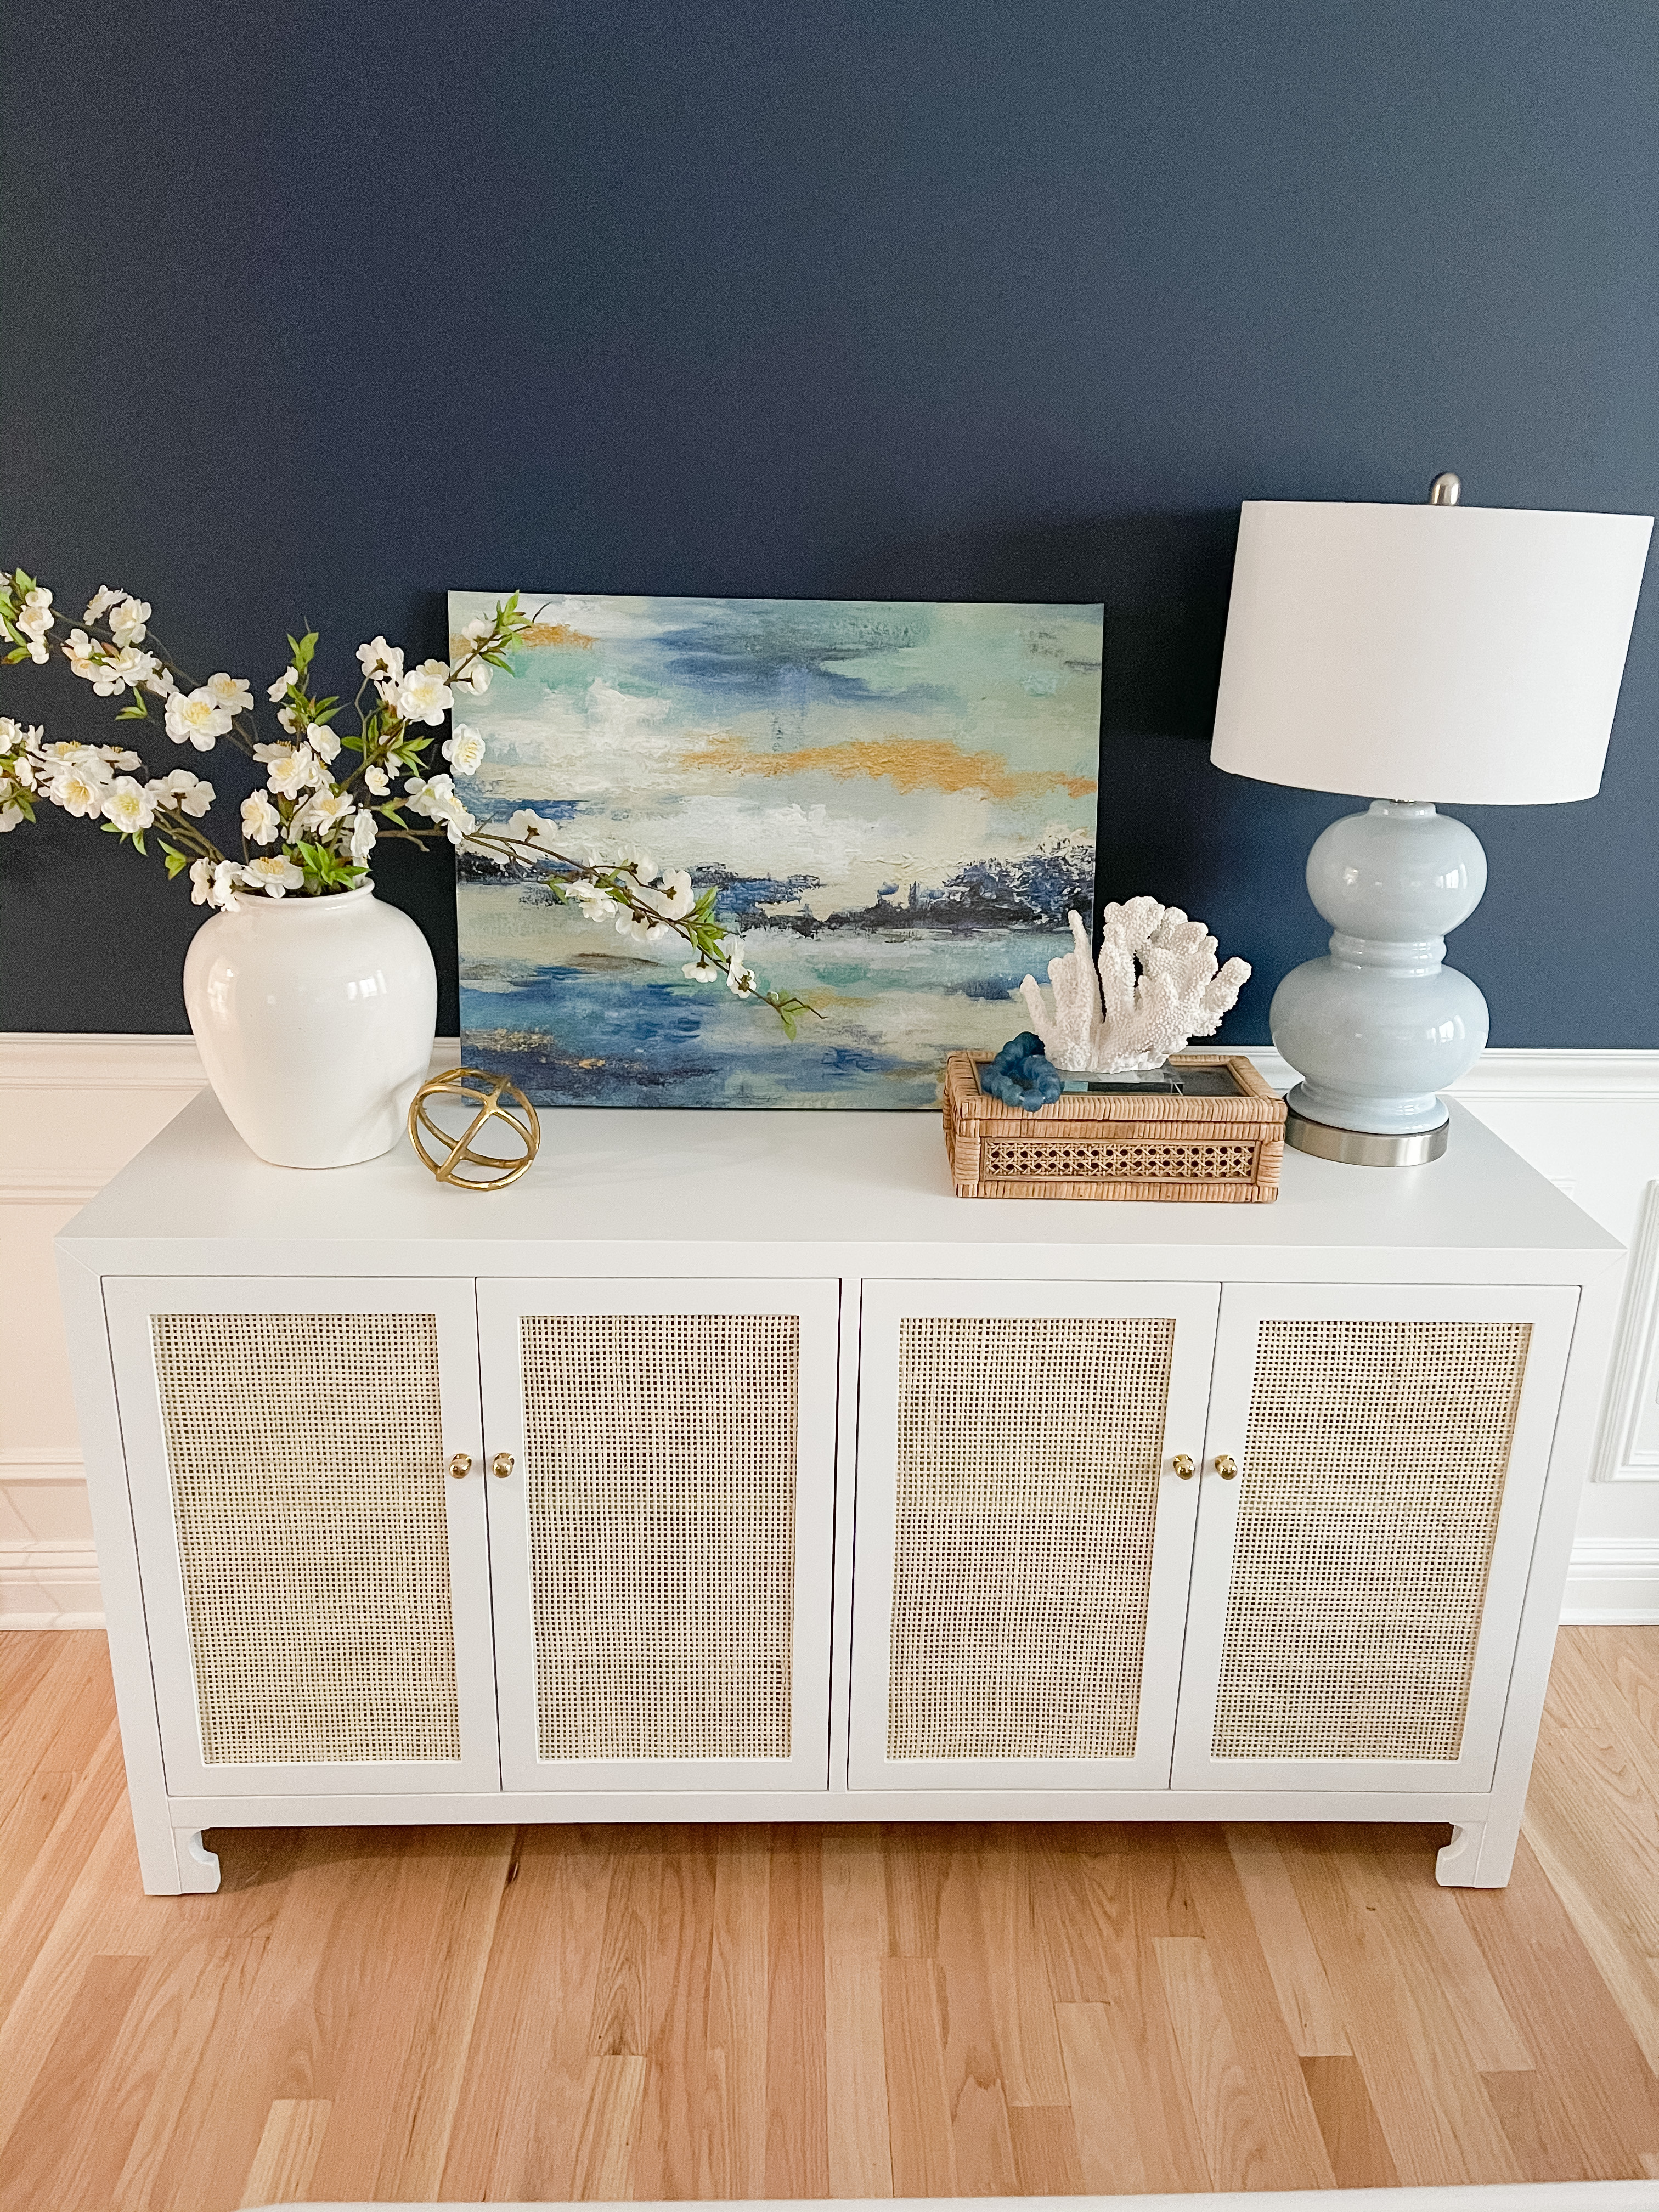 Coastal Dining Room - Favorite Purchase of 2020 - Best Purchase of 2020